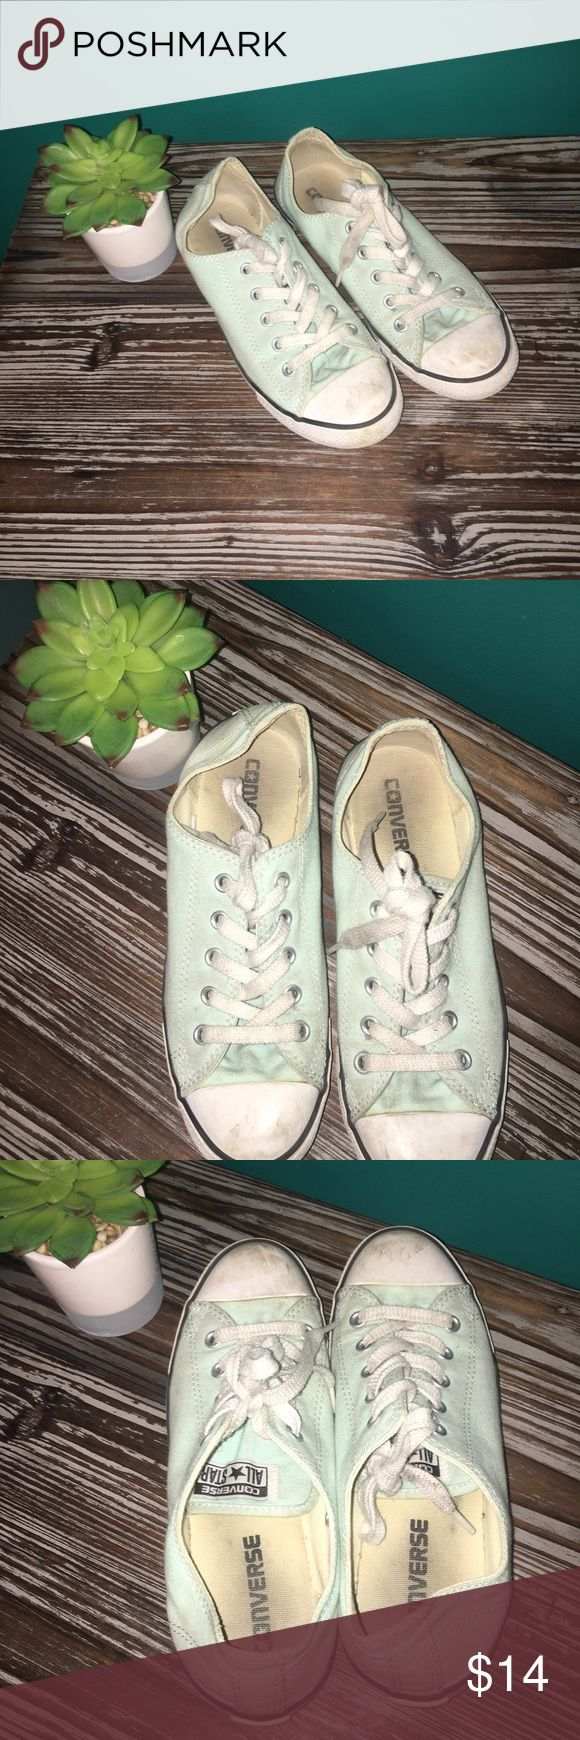 Girl's Teal Converse Pretty worn, but willing to accept offers! Nothing damaged Shoes Sneakers